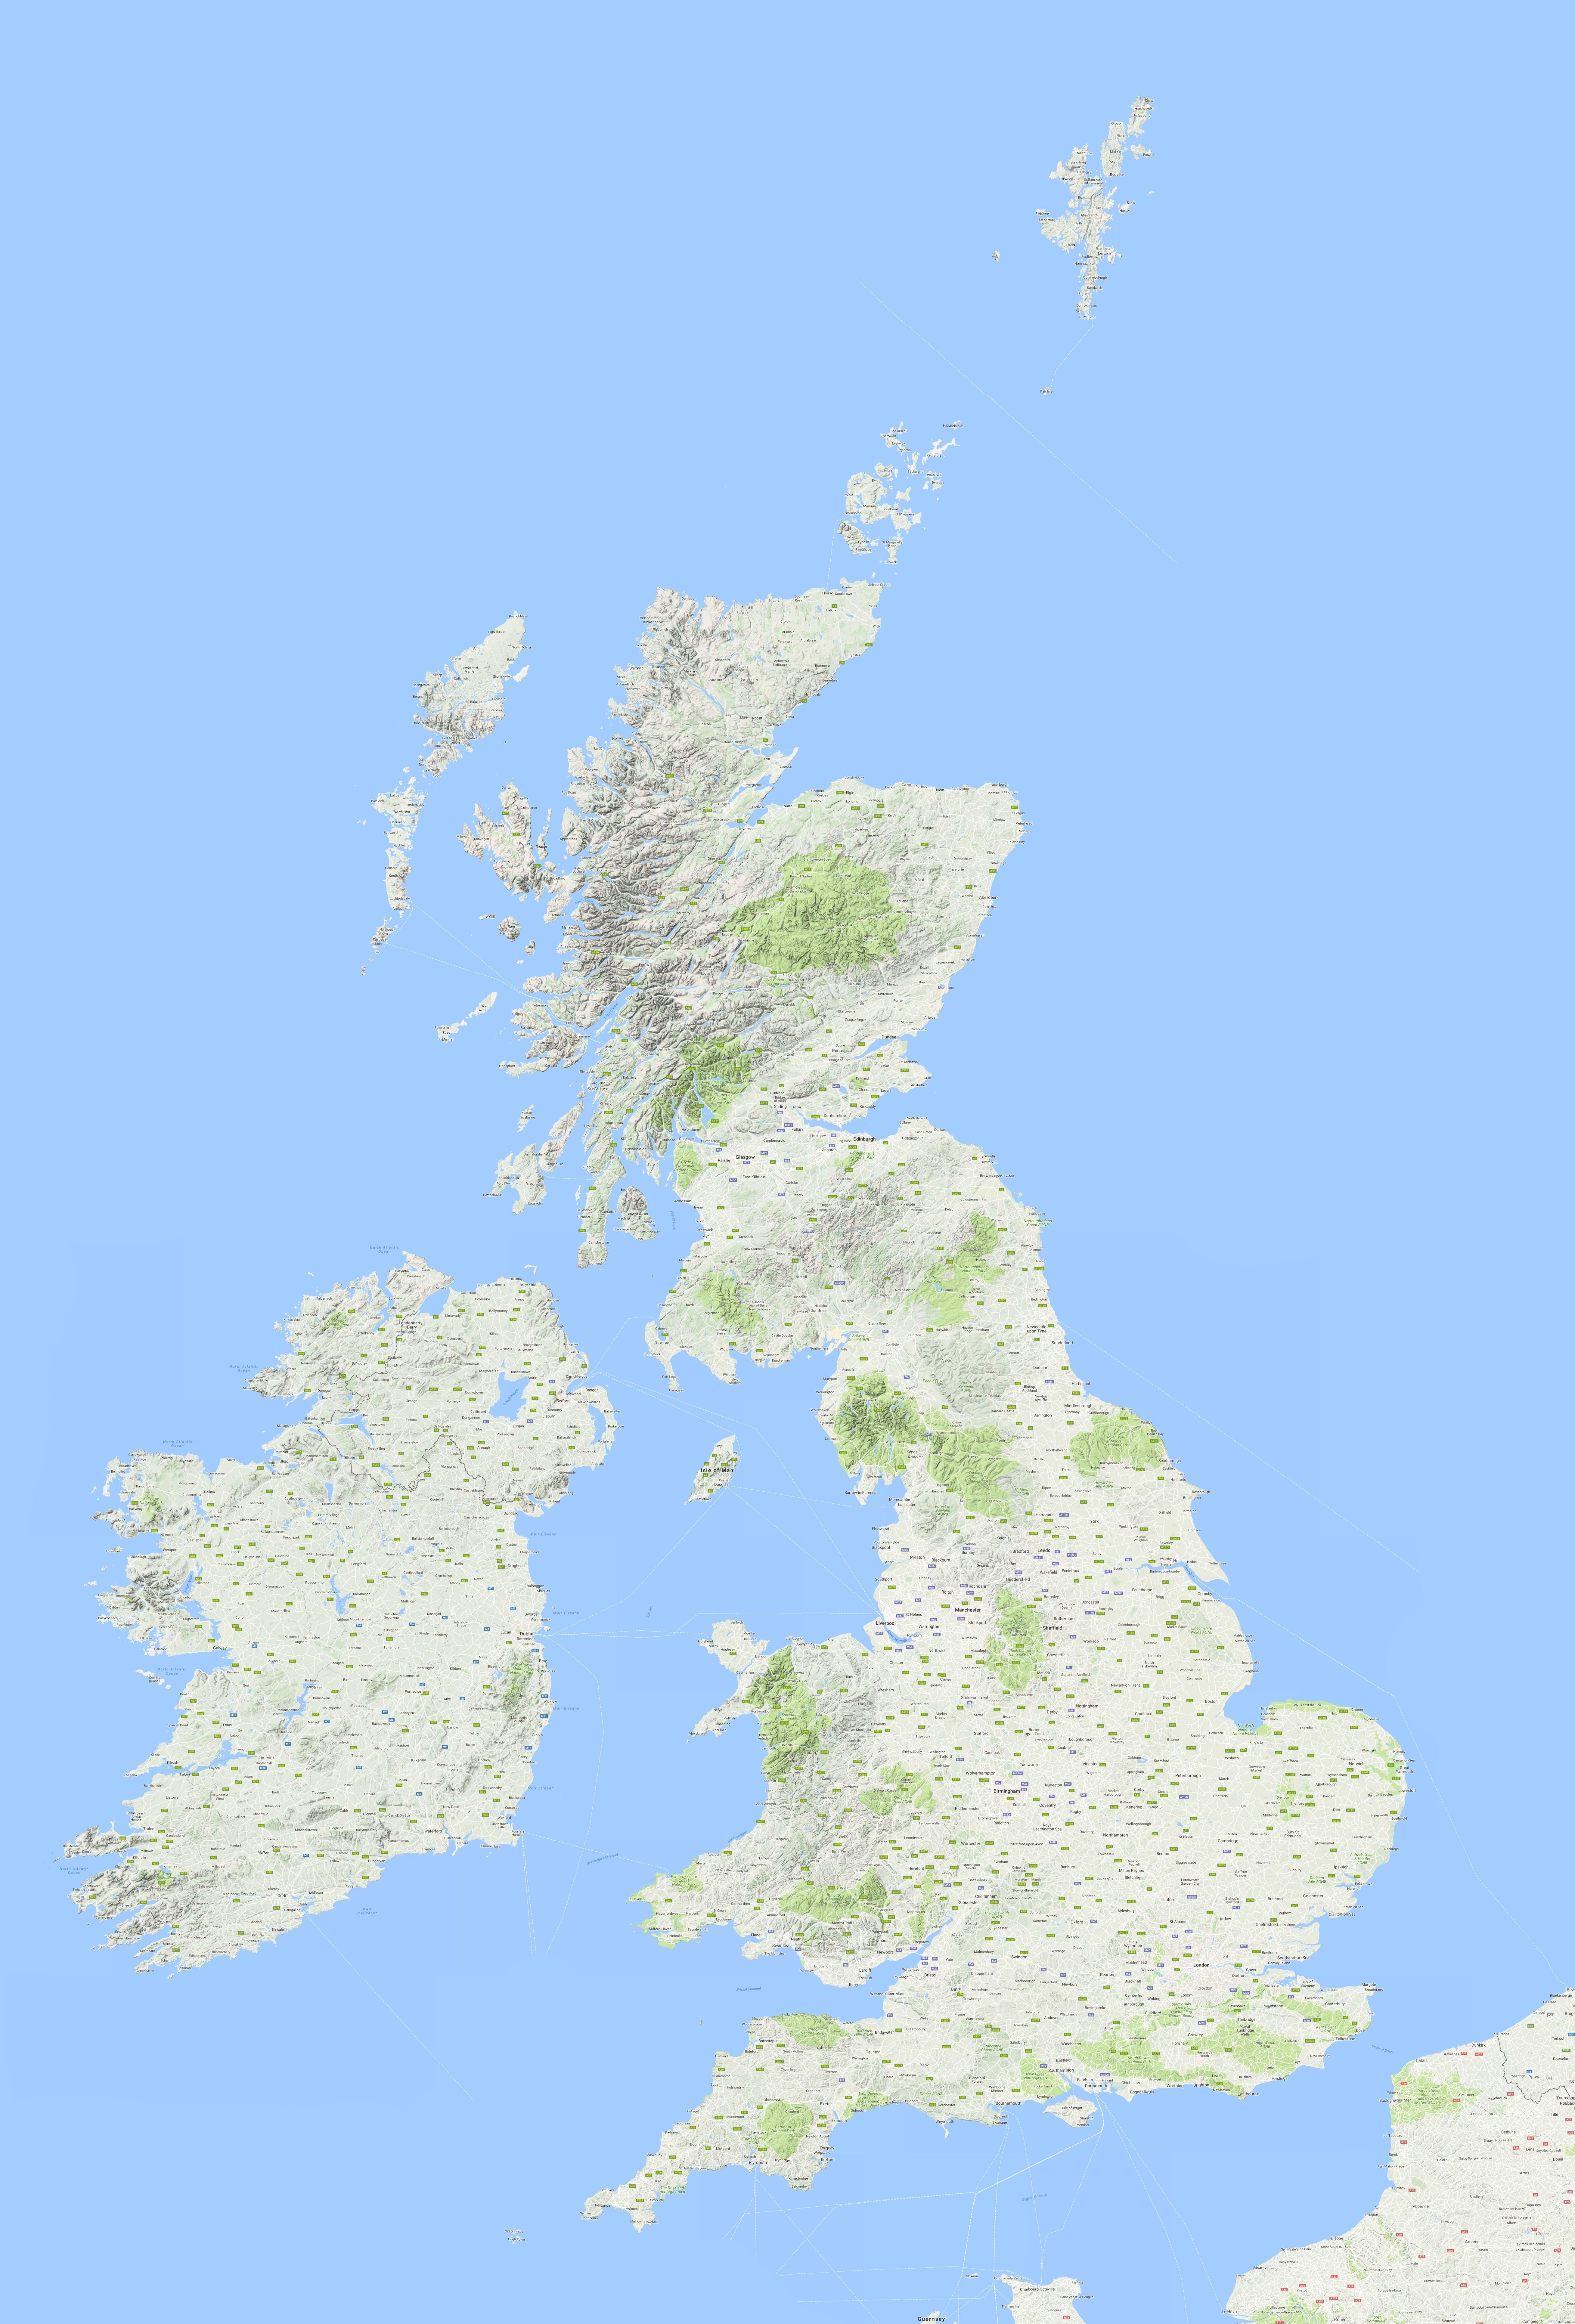 A Mega Map Of The United Kingdom And Ireland Made By Stitching